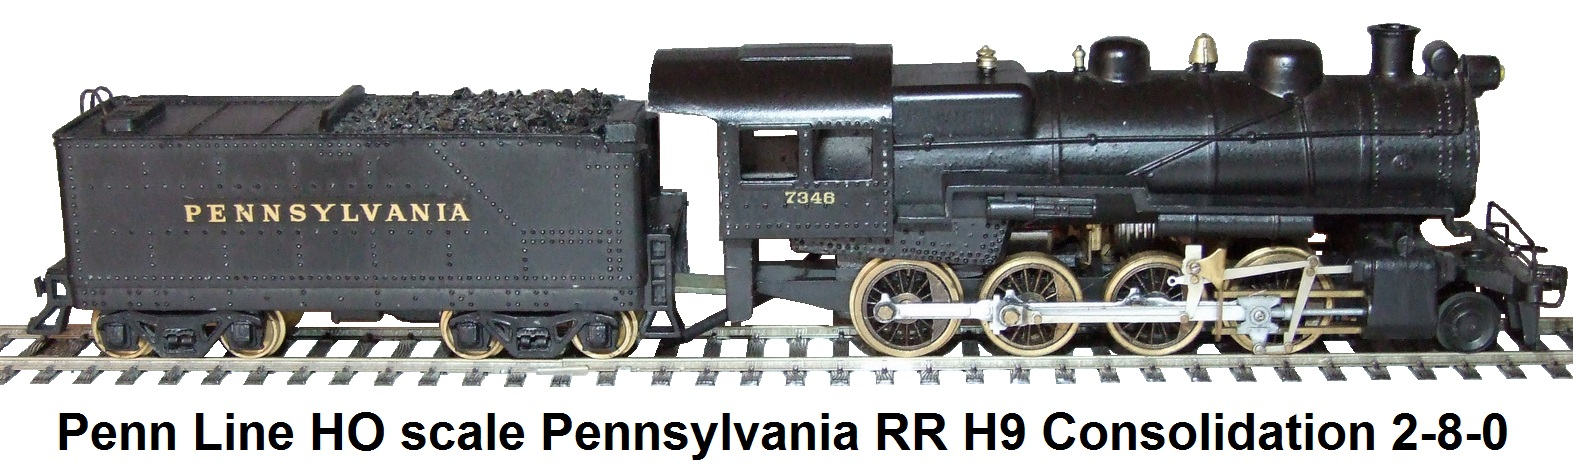 Penn Line HO scale Pennsylvania RR 2-8-0 Consolidation H-9 Loco & Tender #7346